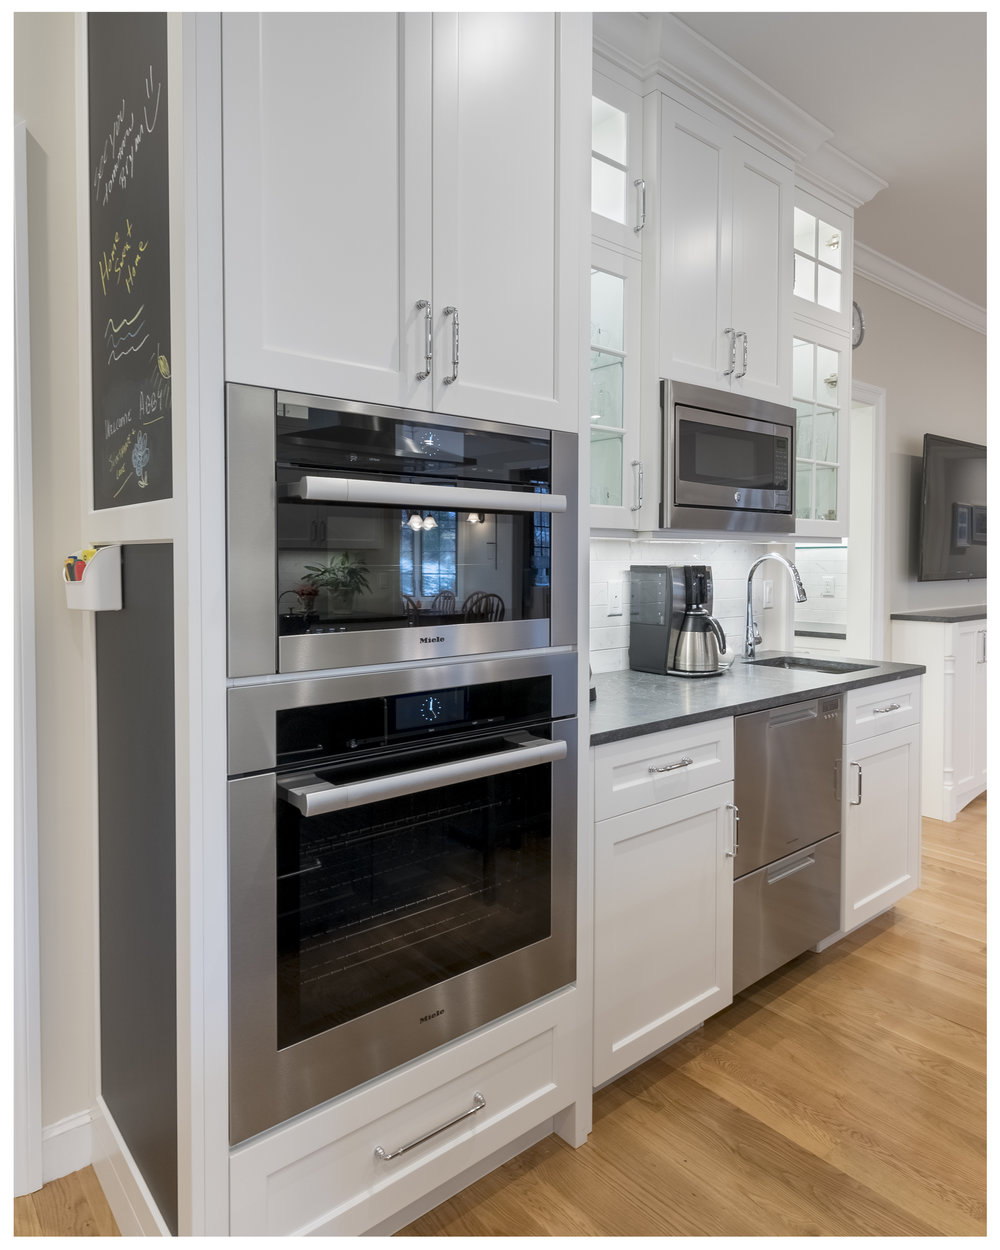 KitchenVisions-Transitional-Kitchen-Acton-014.jpg